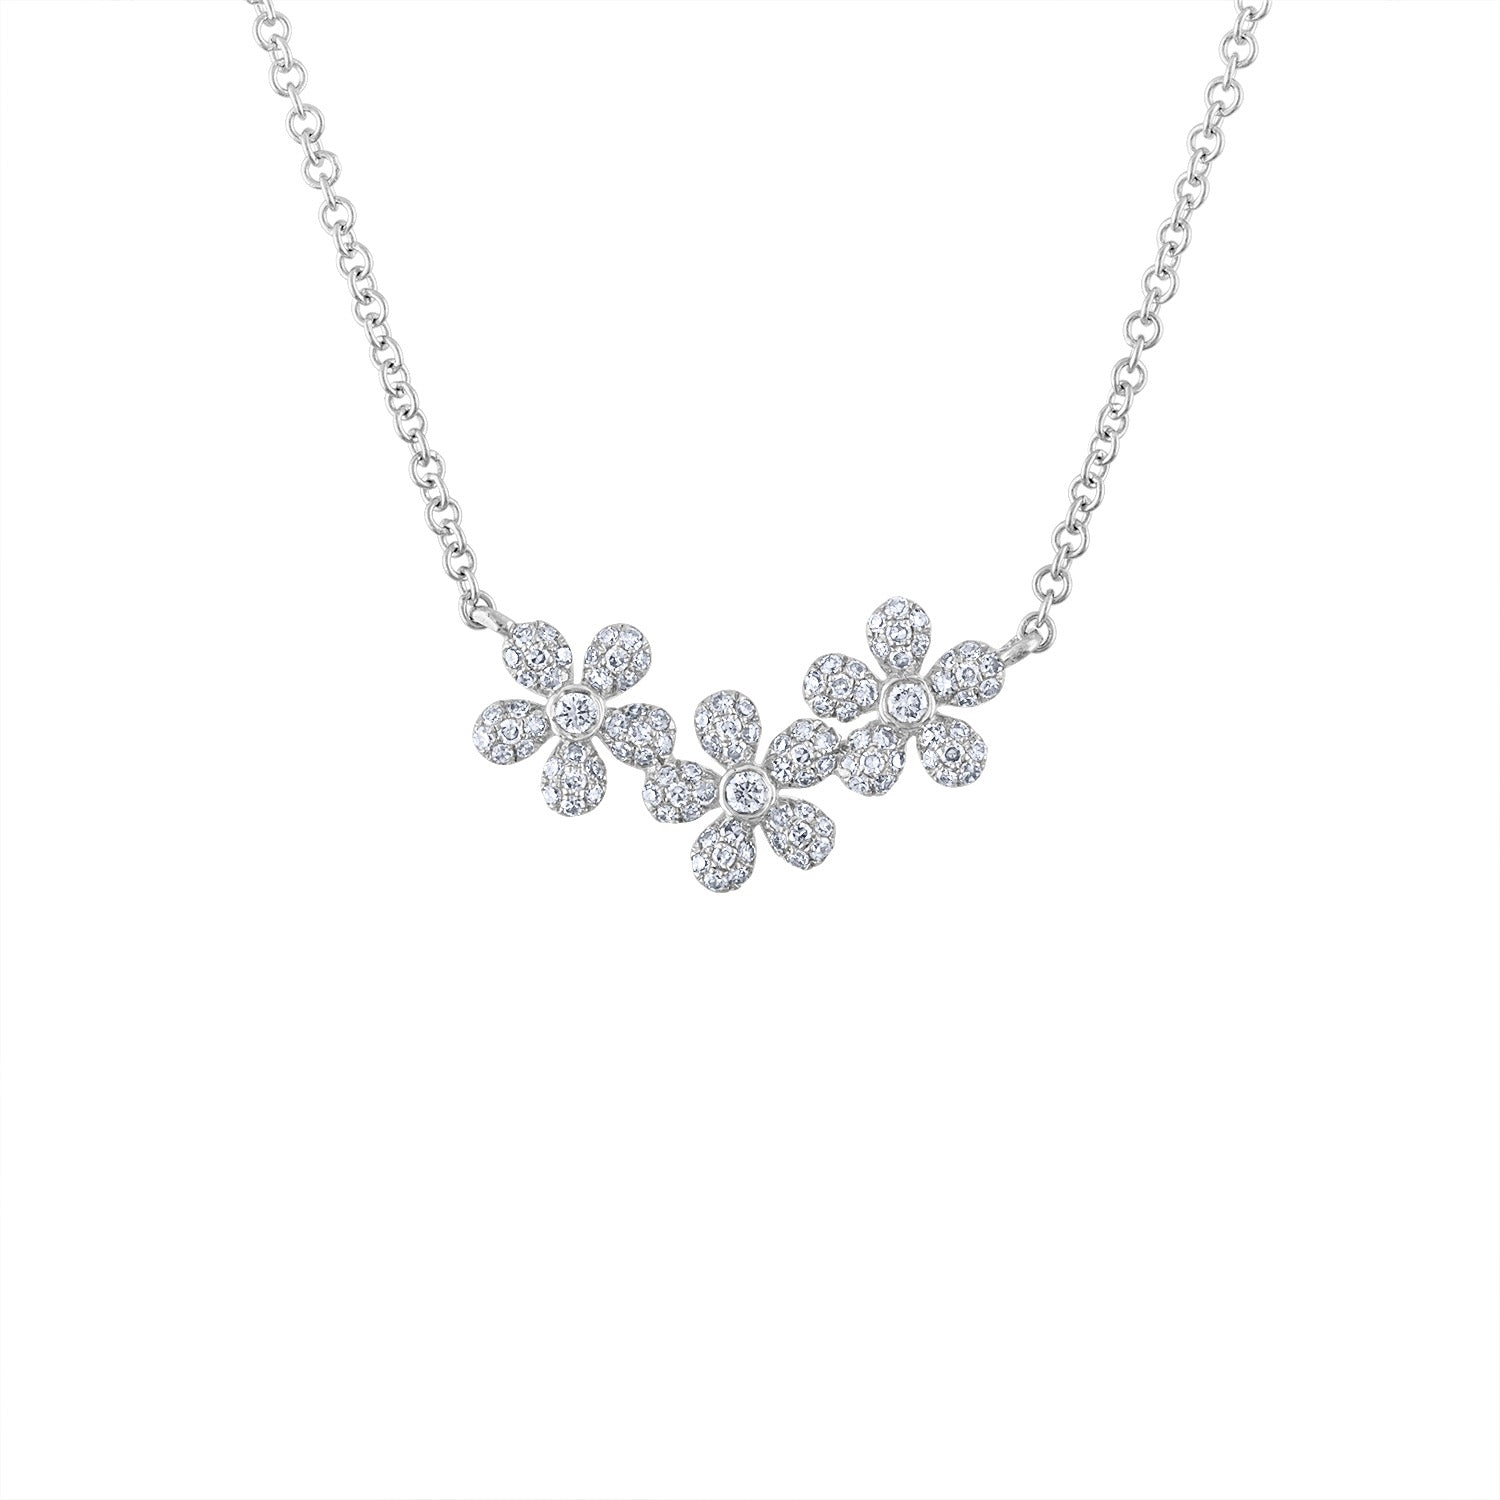 14KT GOLD DIAMOND DAISY NECKLACE